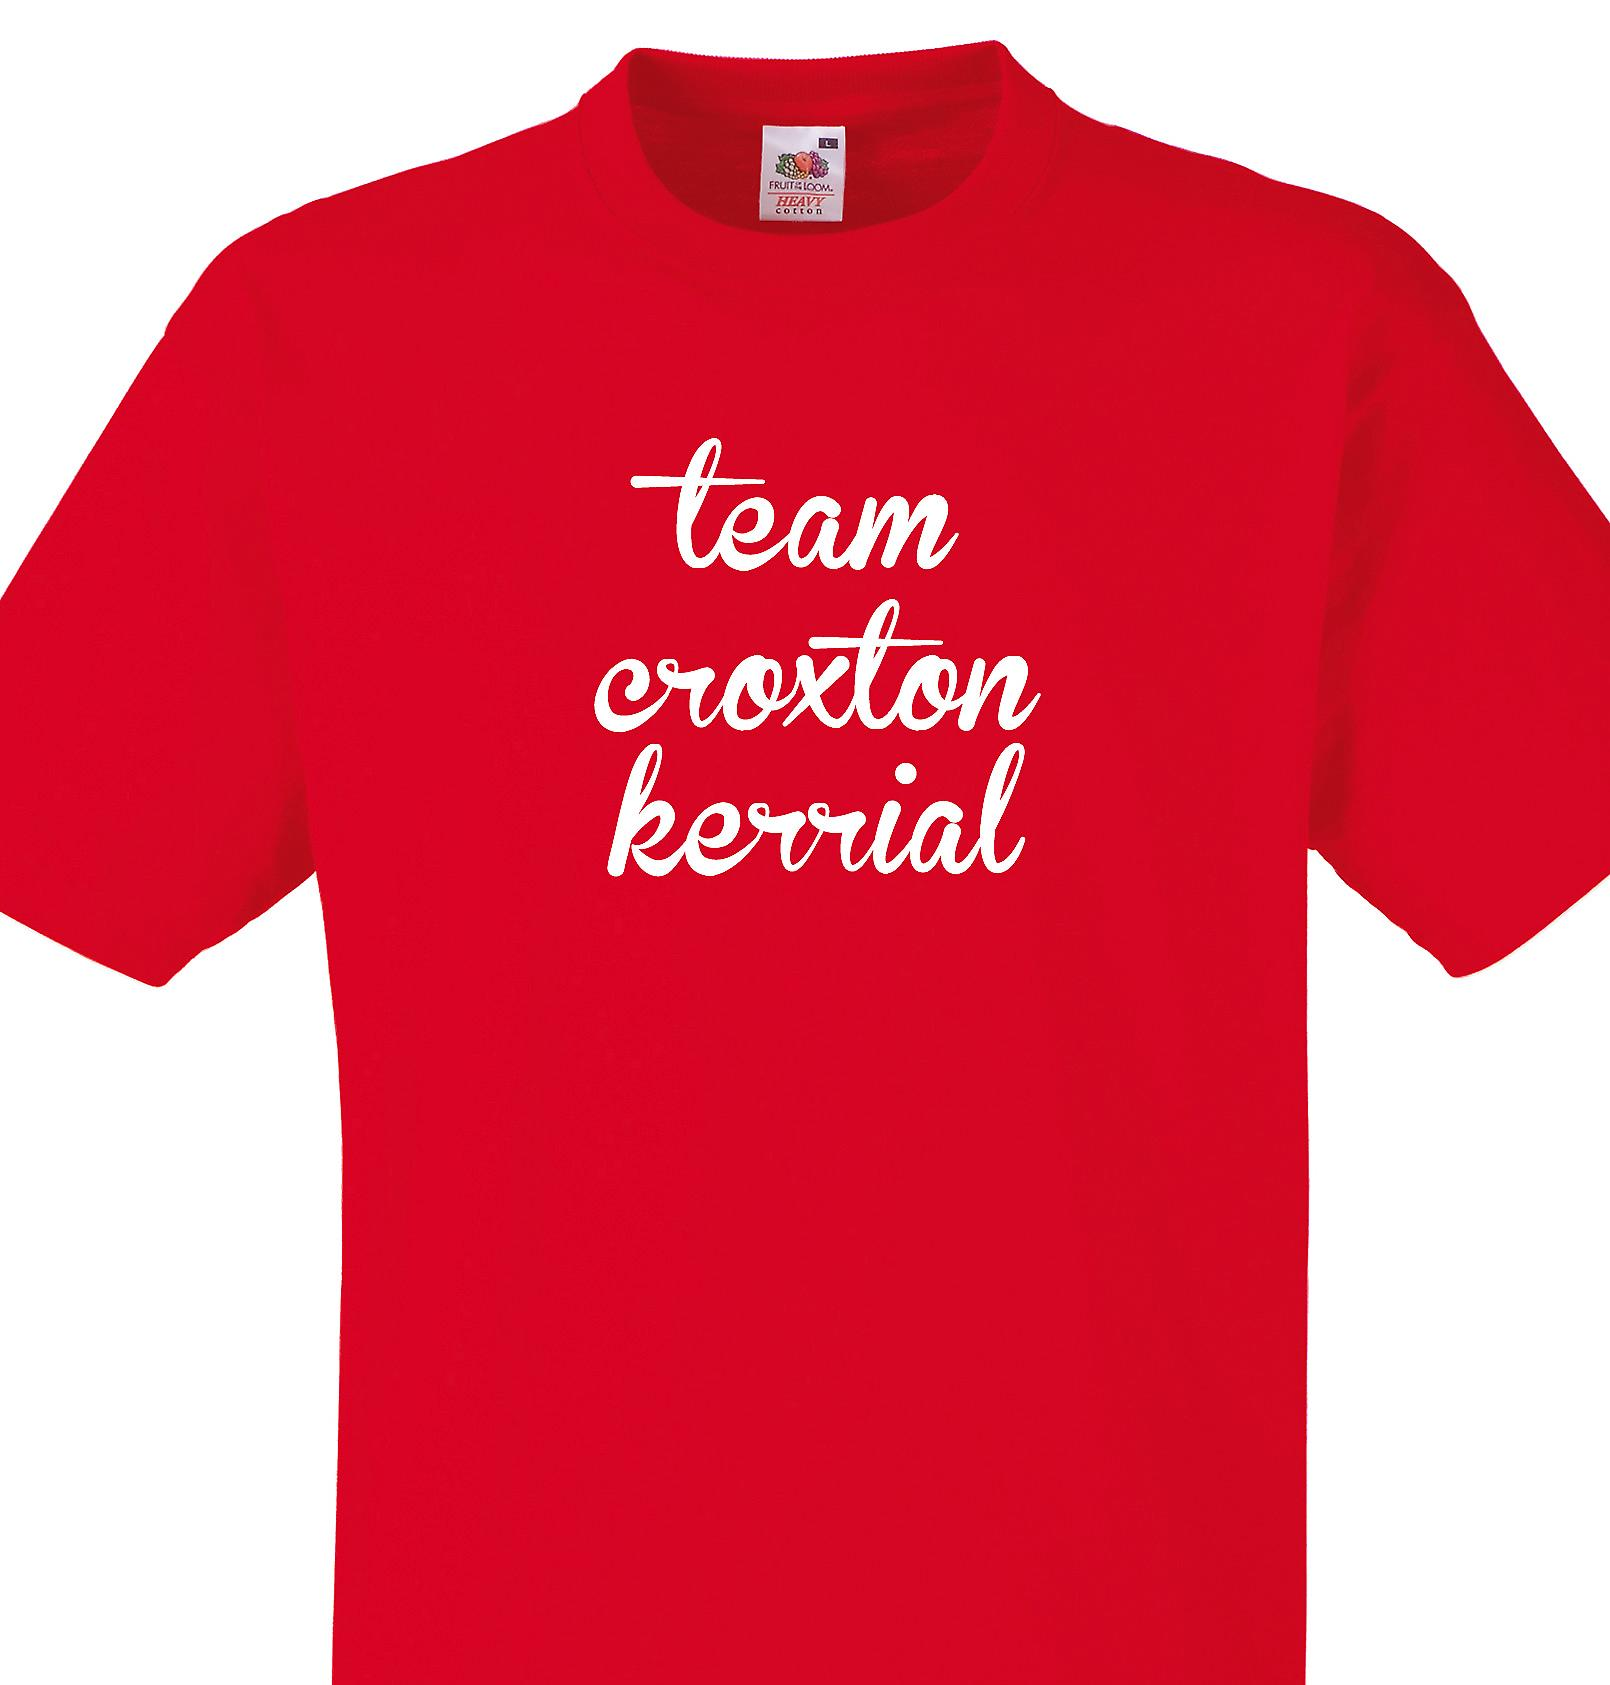 Team Croxton kerrial Red T shirt